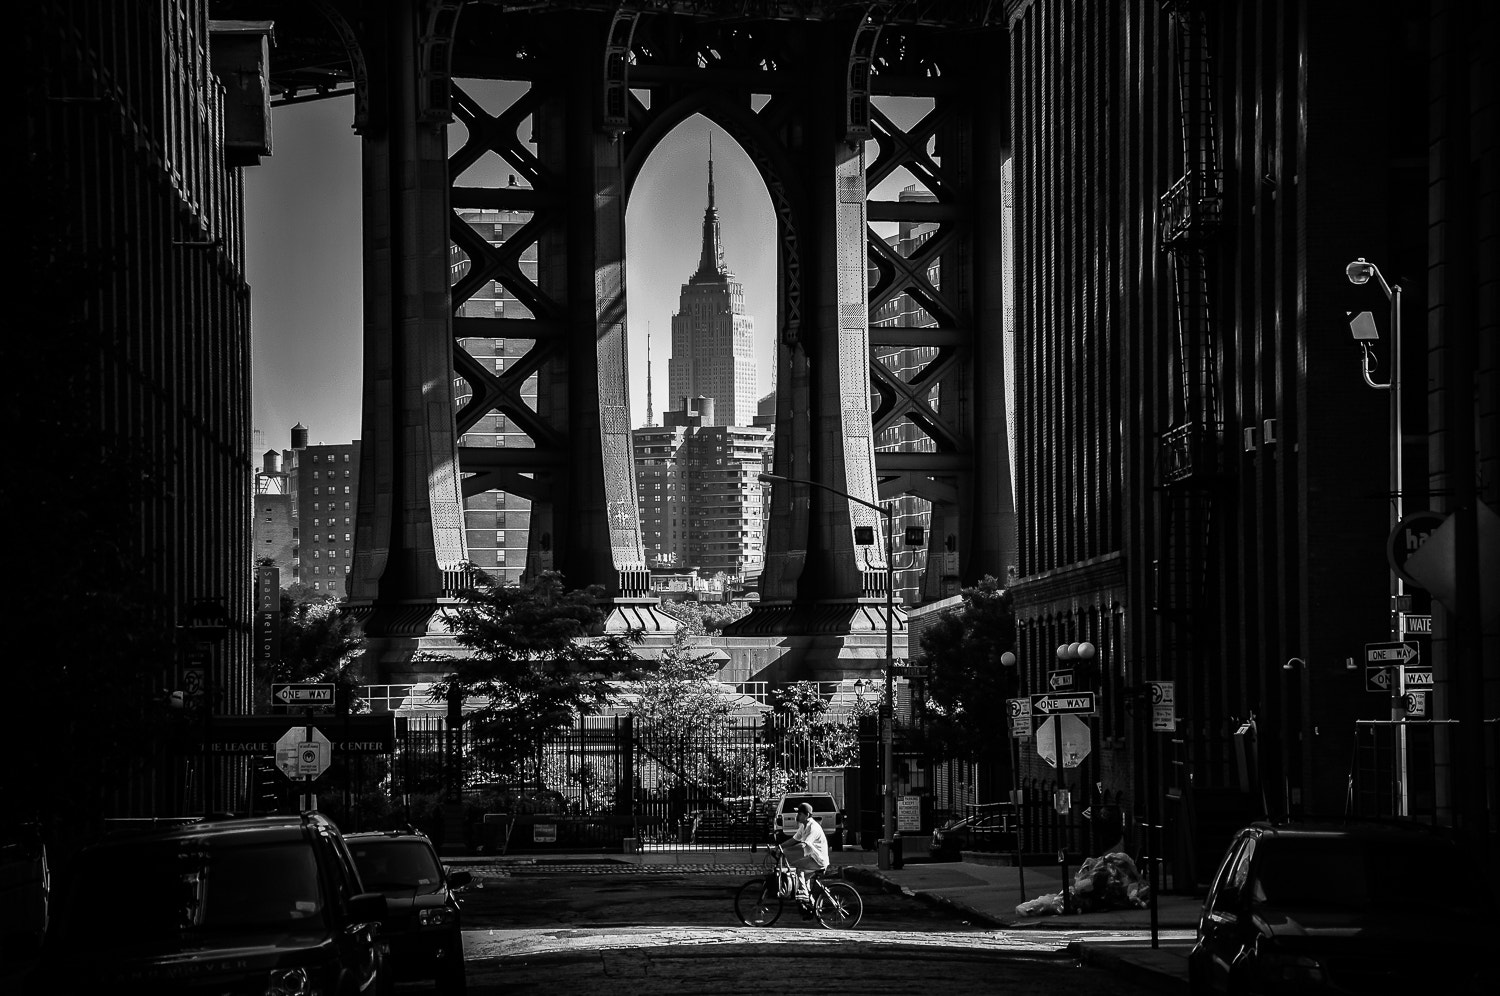 Photograph The delivery guy in DUMBO, Brooklyn by Guillaume Gaudet on 500px